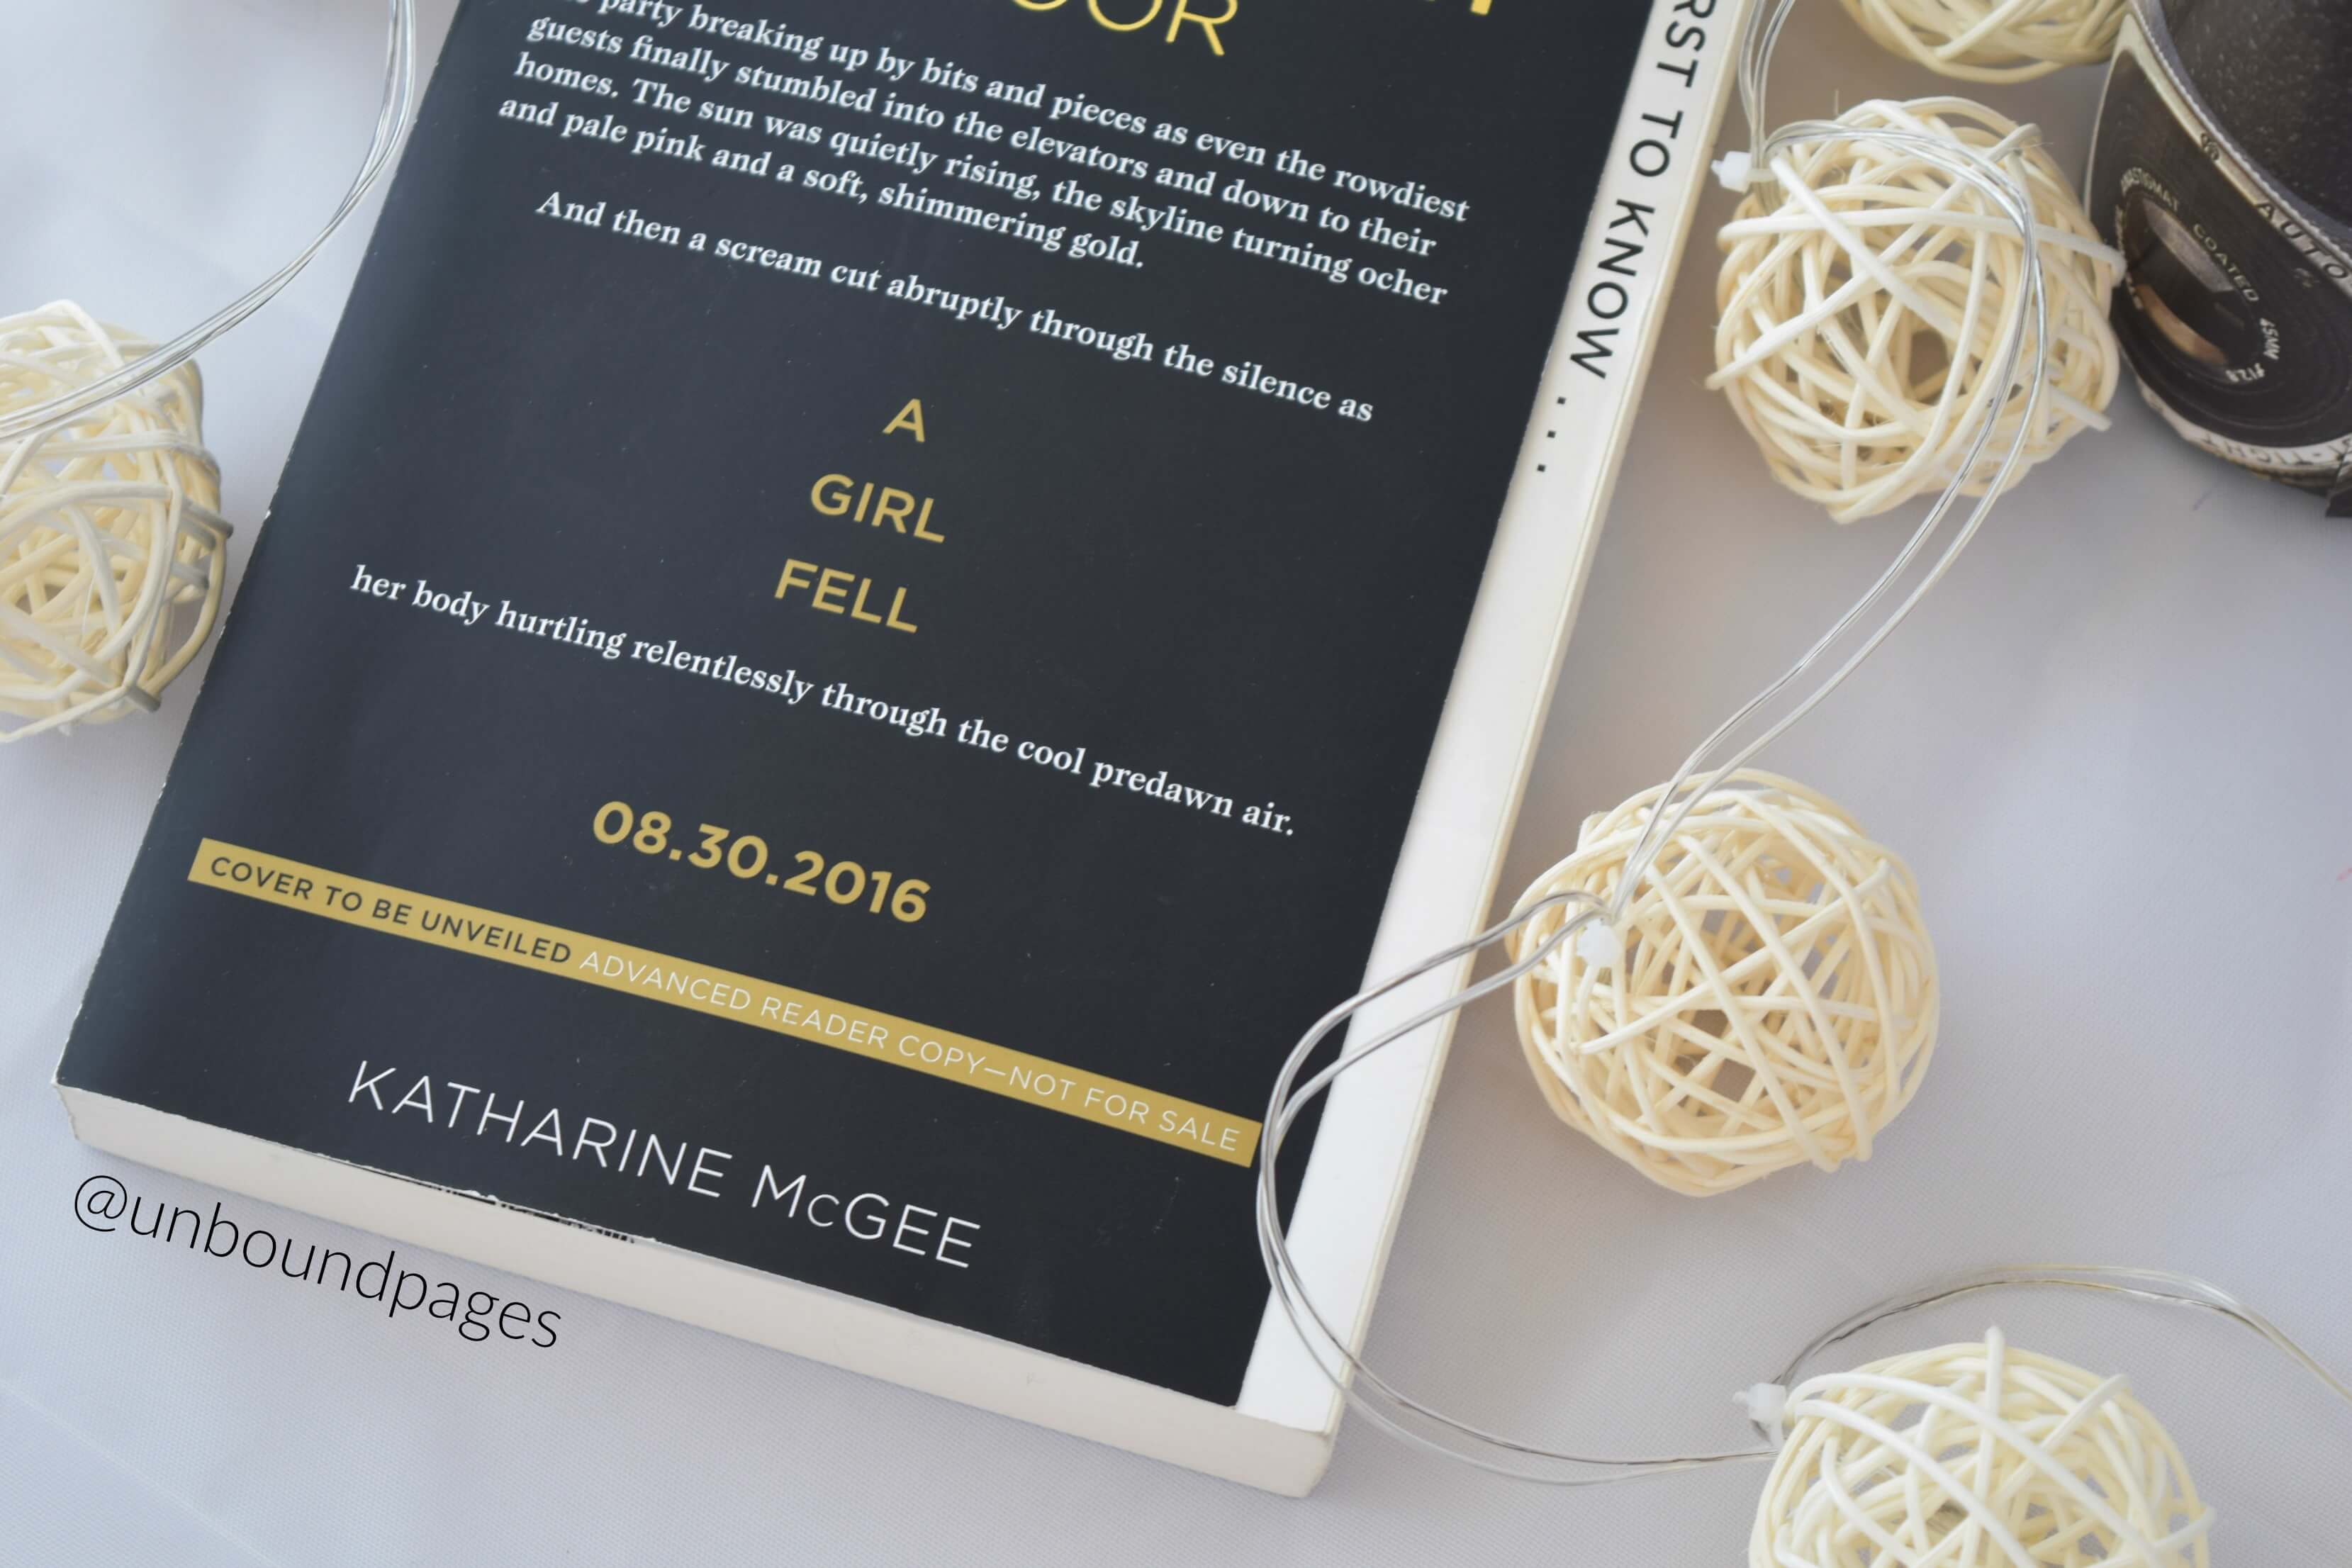 The Thousandth Floor by Katherine McGee was anticlimactic and a little boring - unboundpages.com